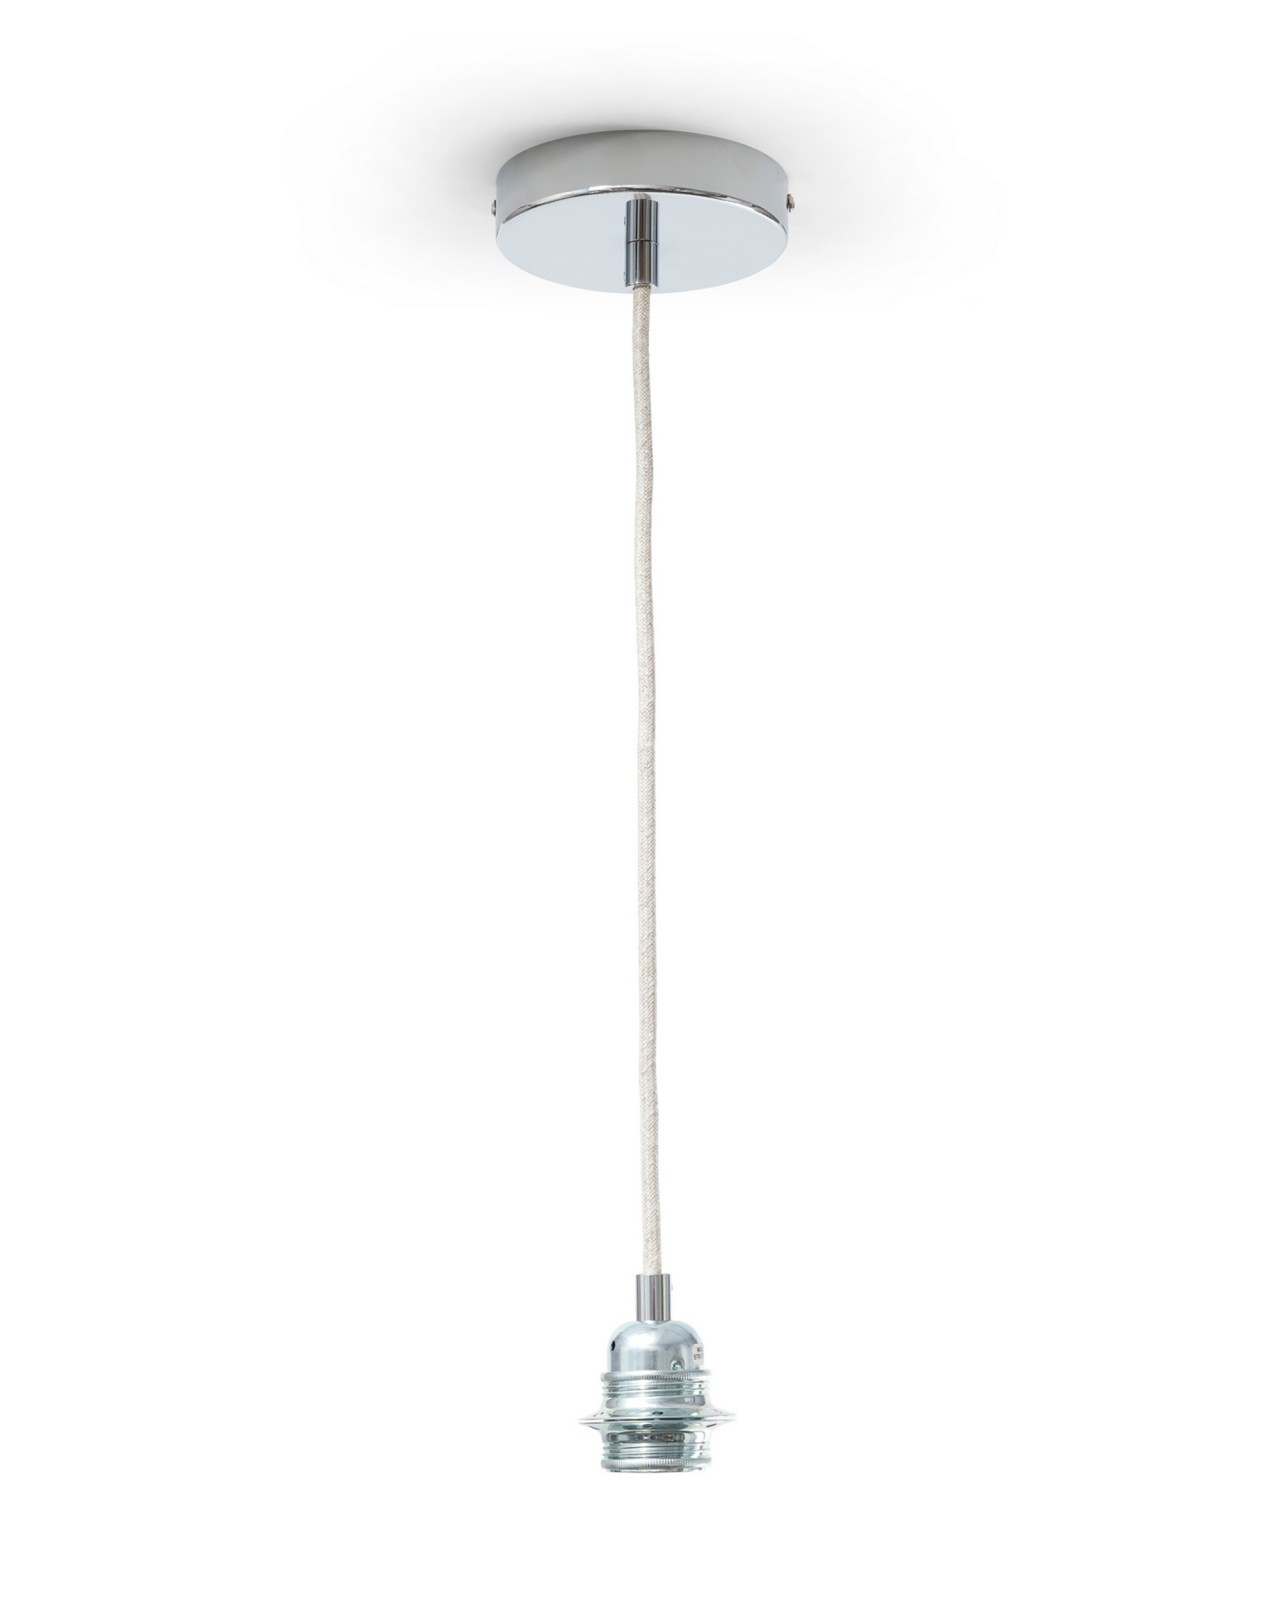 BUCCANEERS OF BAHAMAS Pendant Lamp